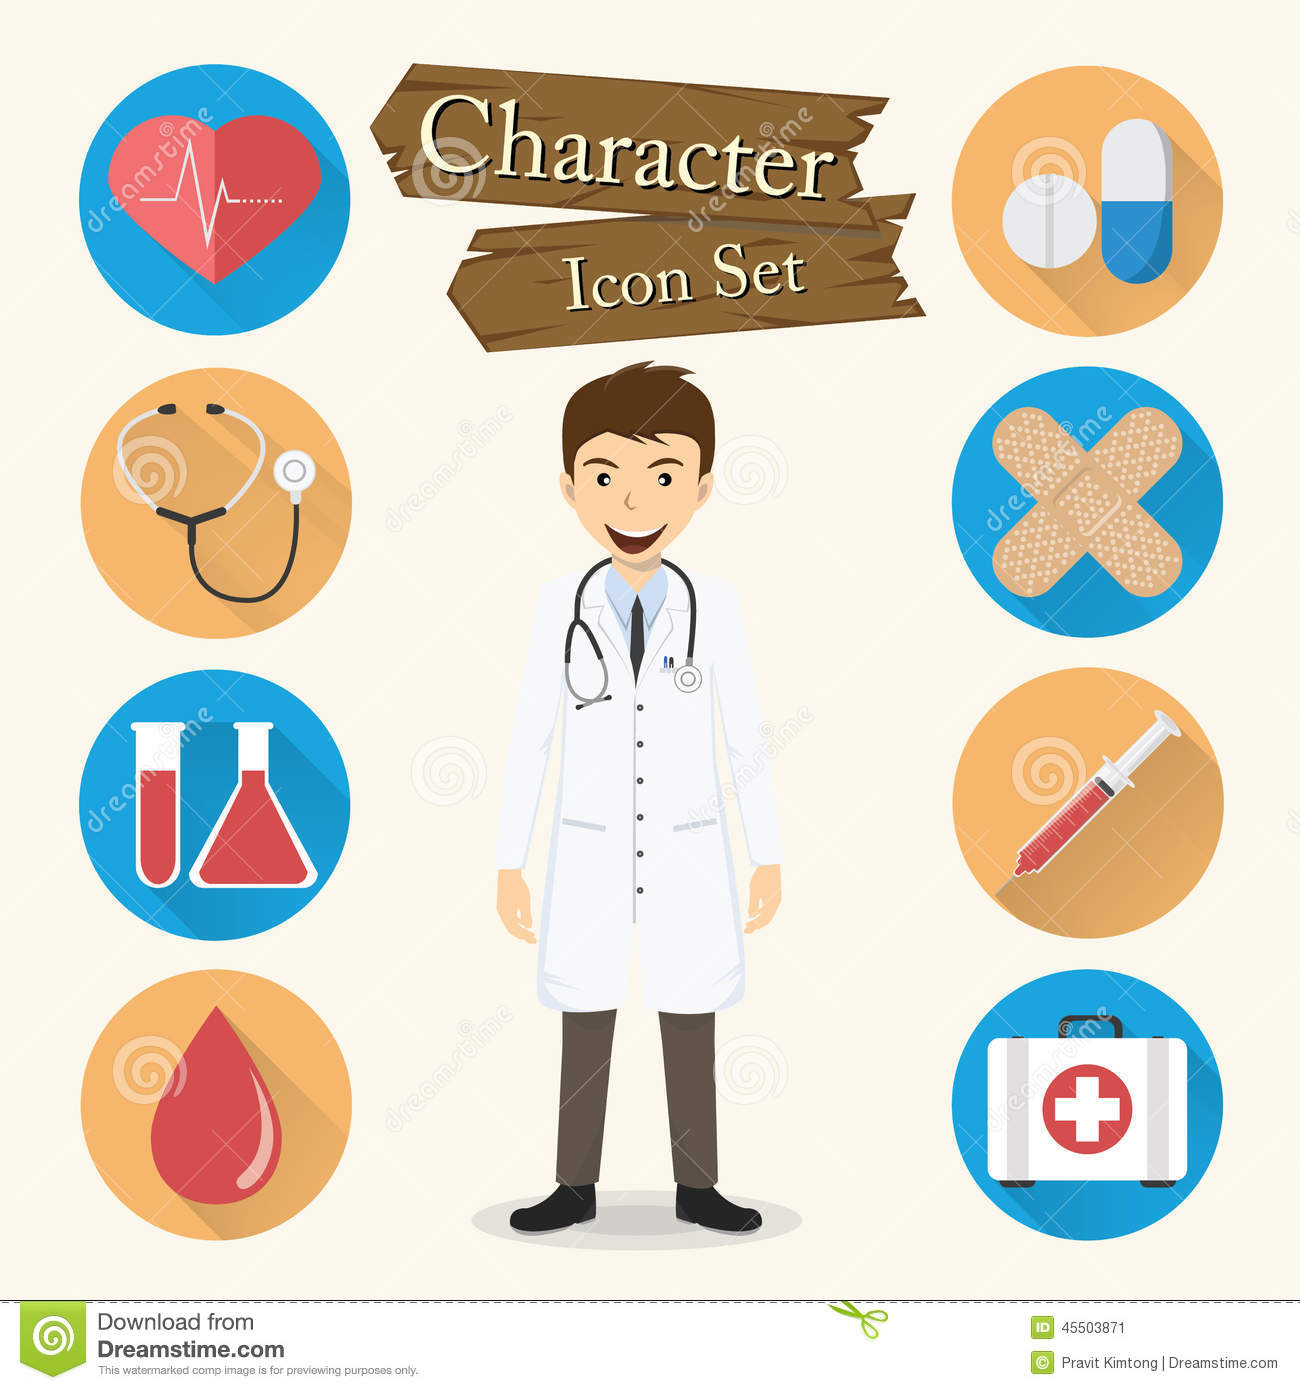 Doctor Character Icon Set Vector Stock Vector - Image: 45503871